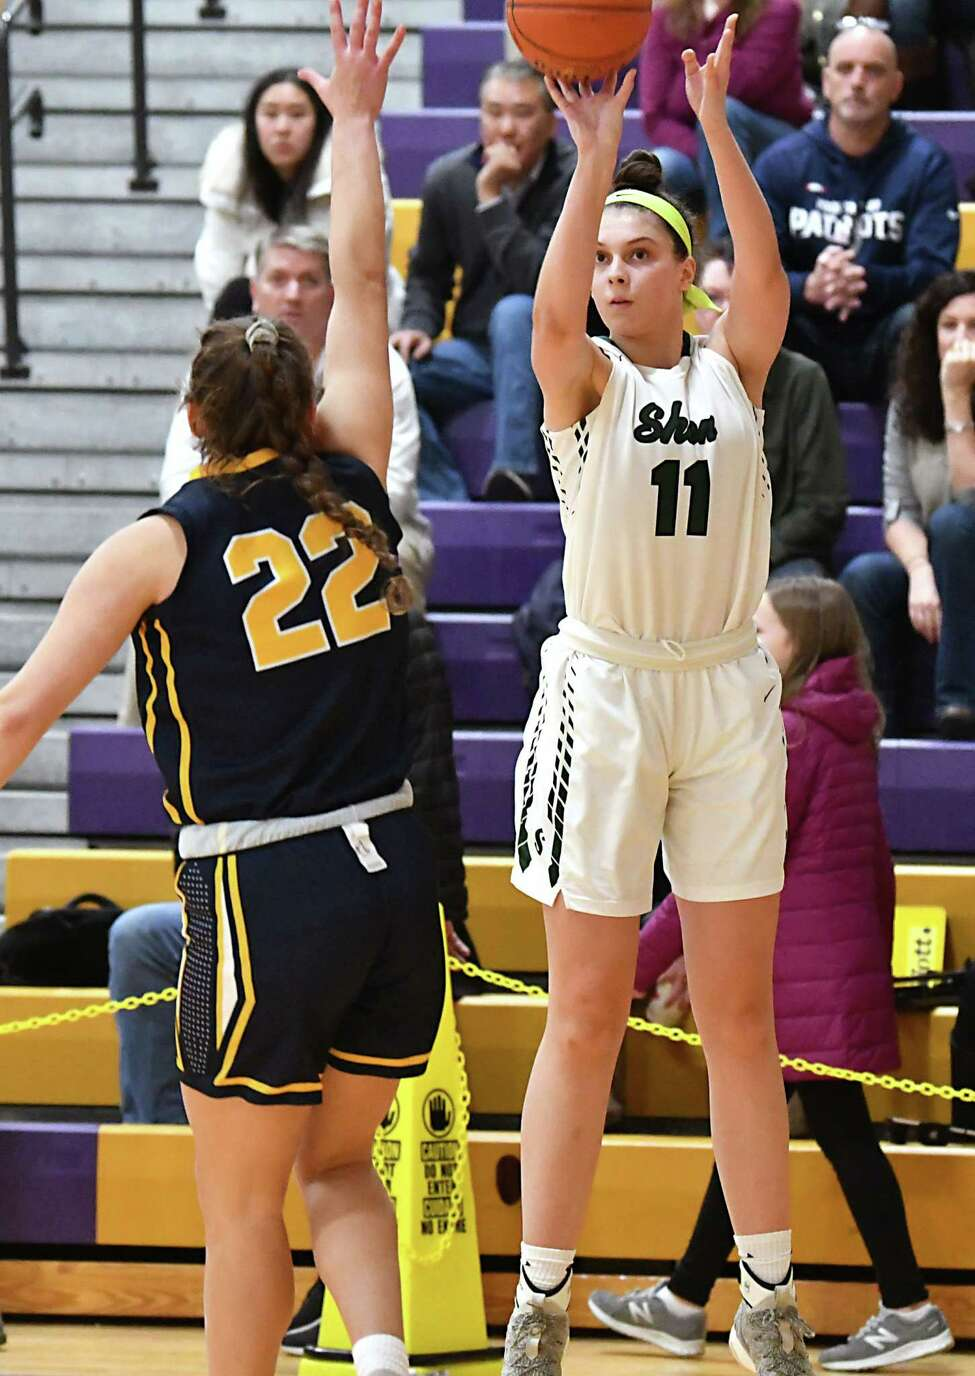 Shenendehowa's Cat Almeida, #11, is guarded by West Genesee's Julia Logana as she goes up for a three-pointer during a basketball game on Friday, Dec. 28, 2018 in Amsterdam, N.Y. (Lori Van Buren/Times Union)